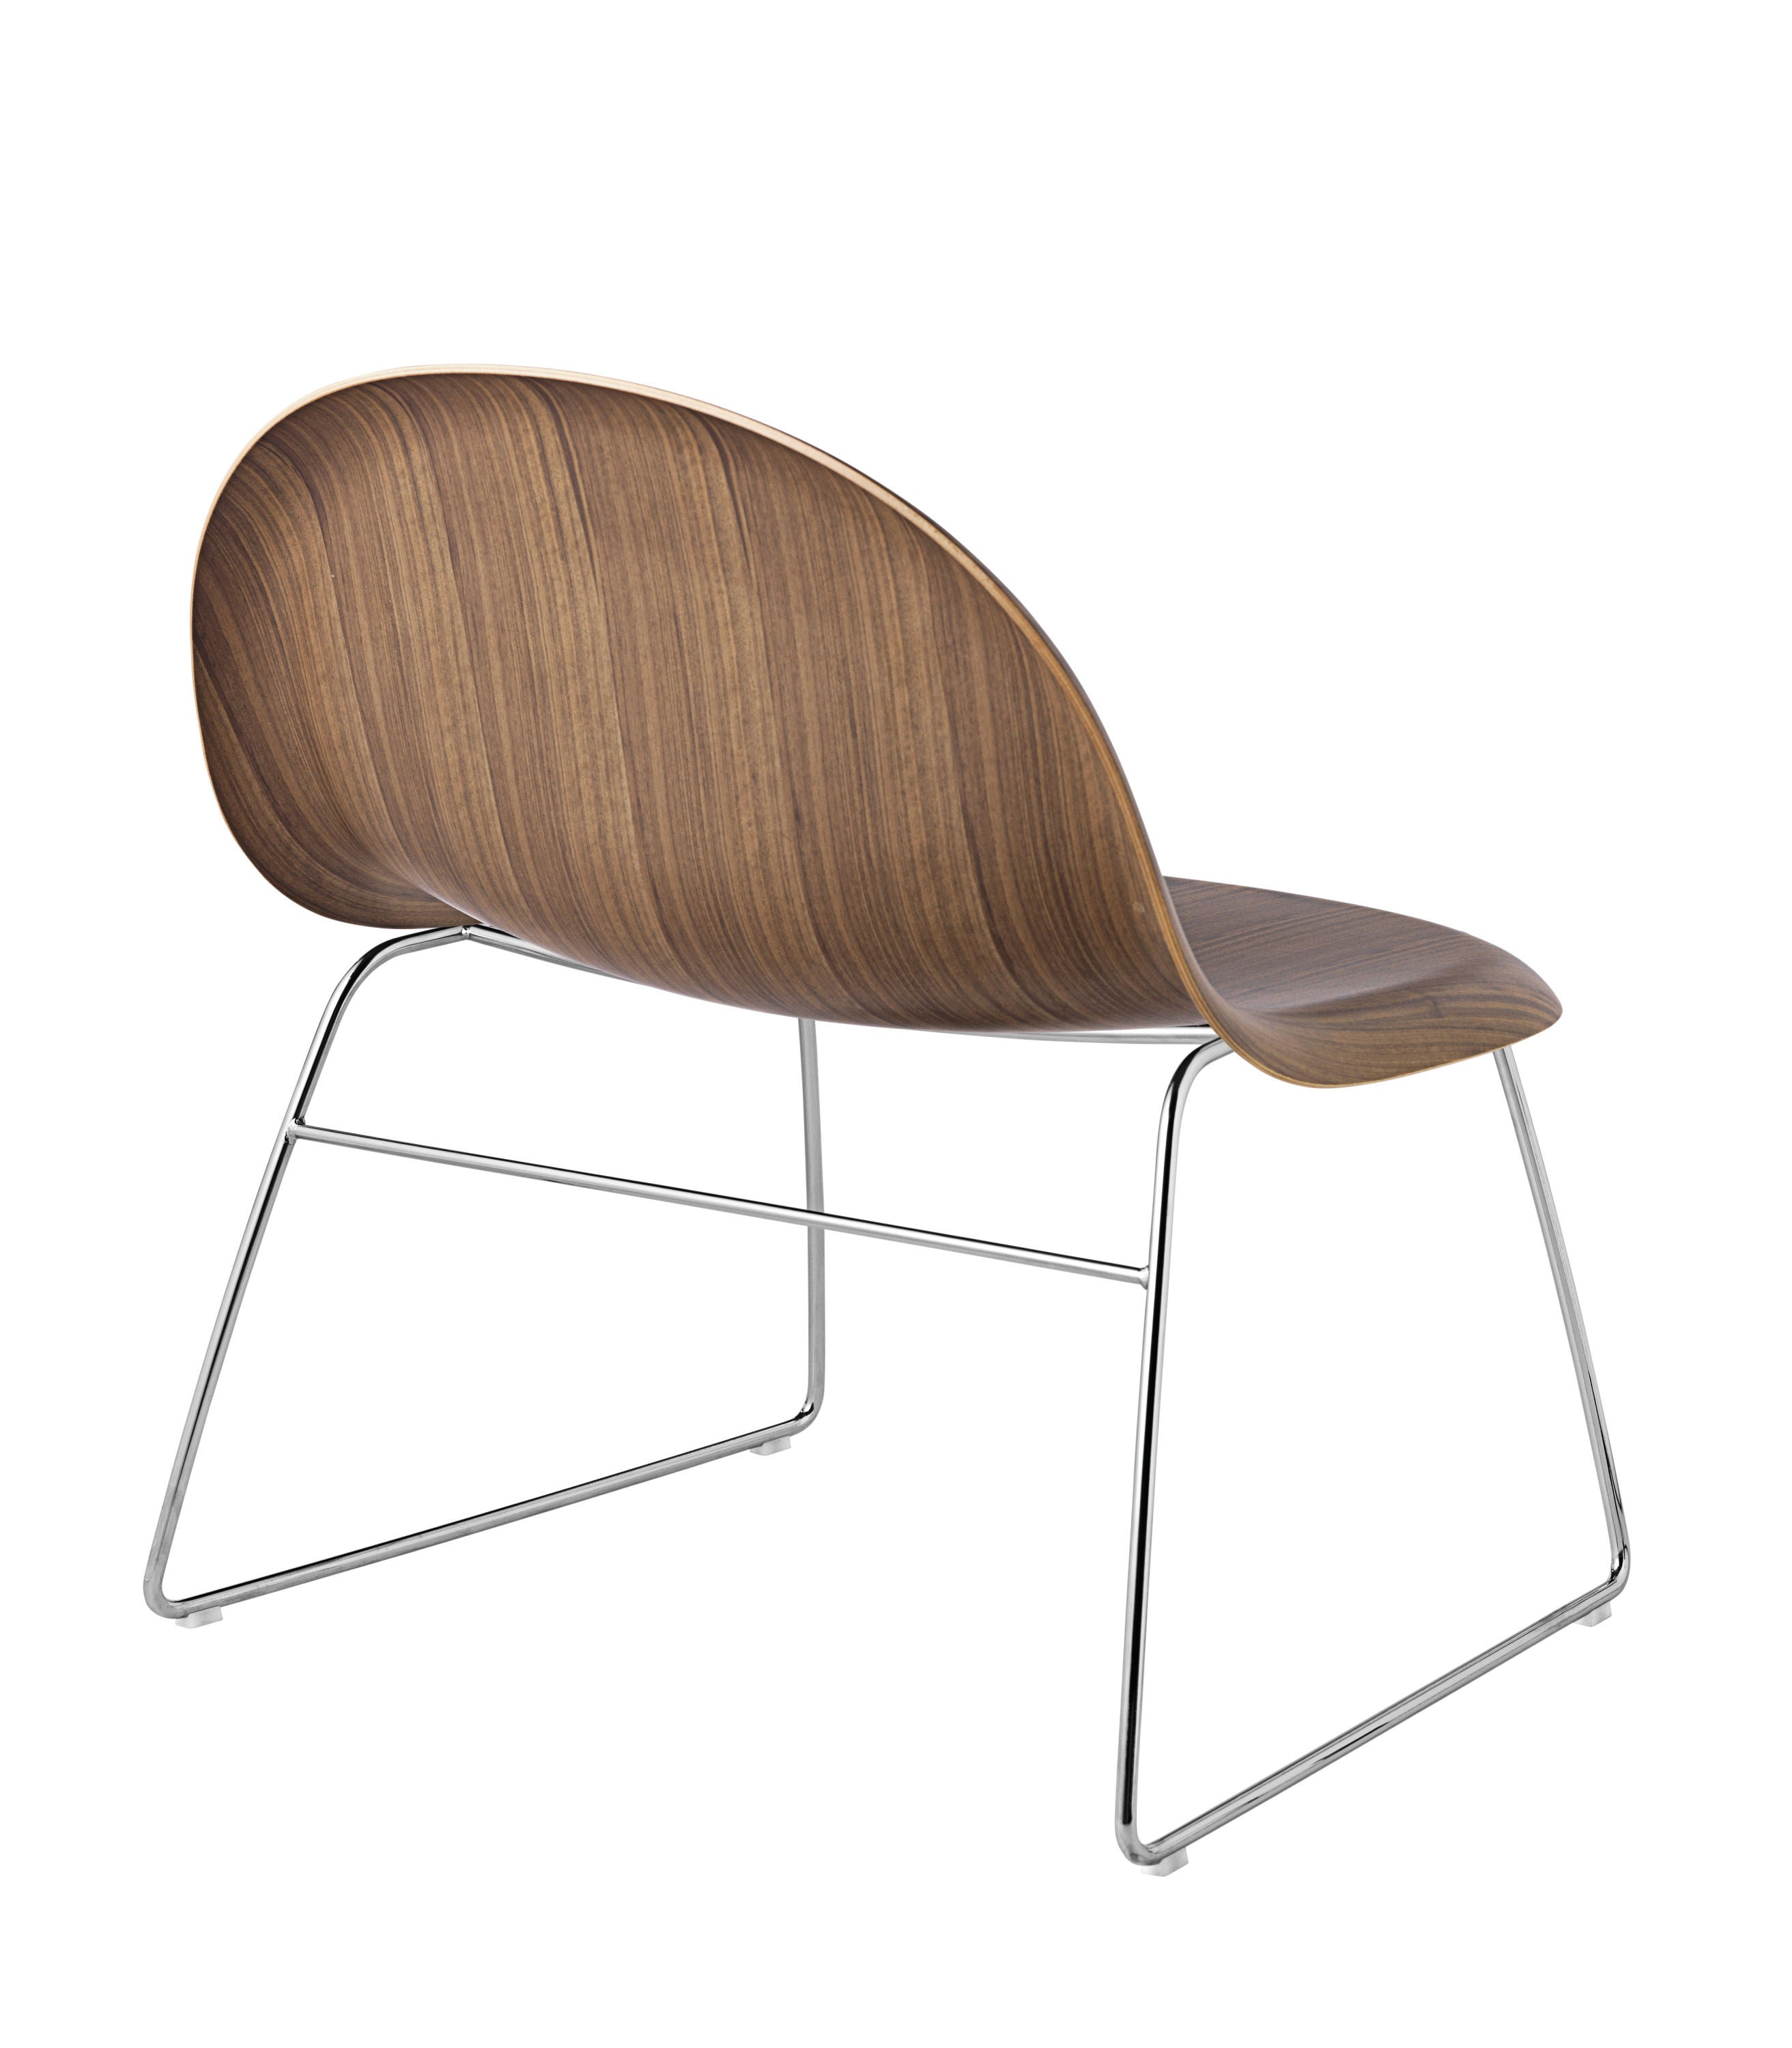 3D Lounge Chair - Un-upholstered Sledge Crome base, American Walnut shell fra GUBI